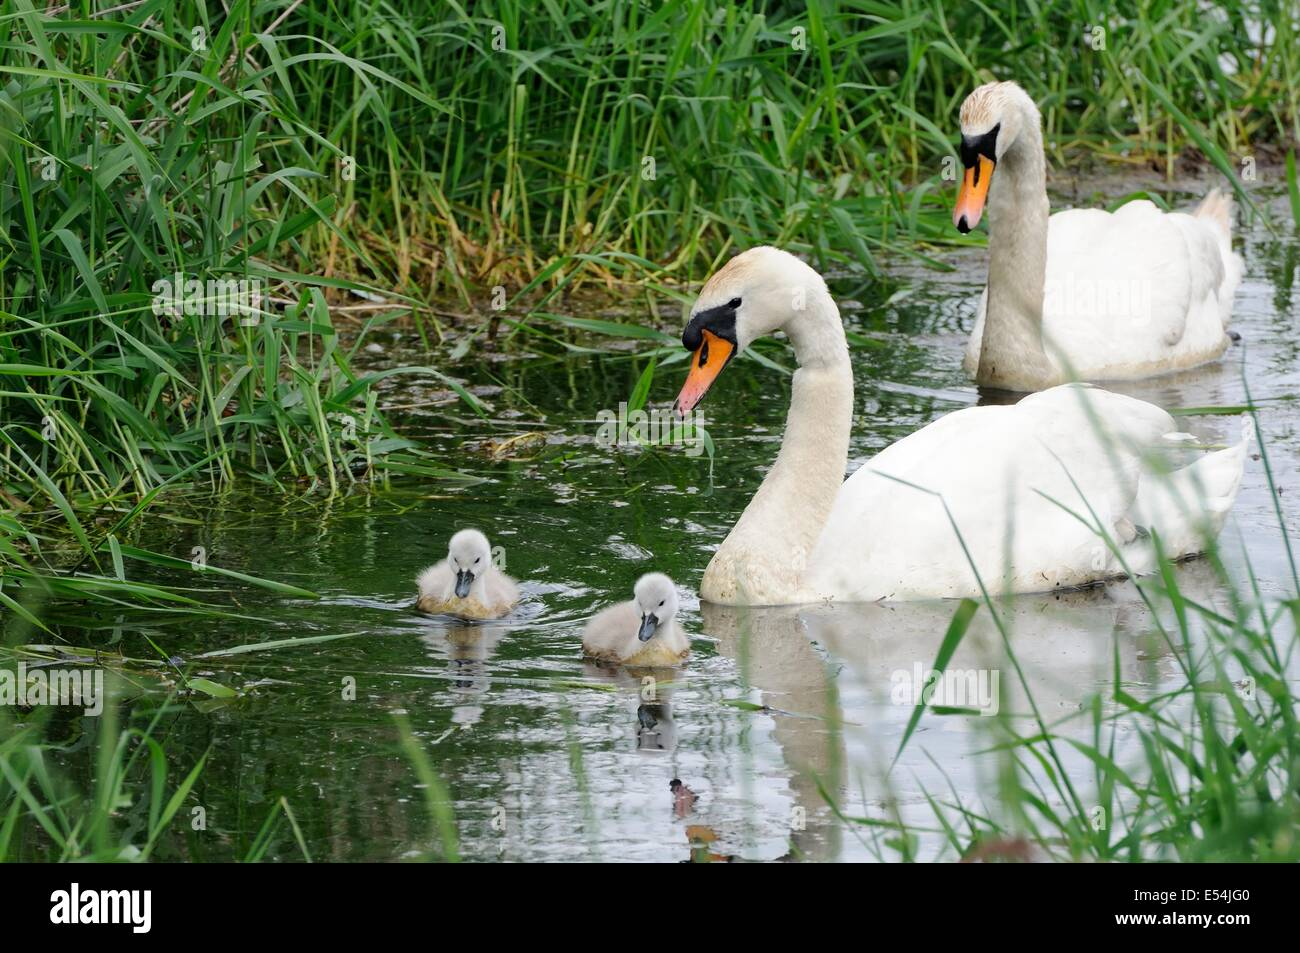 A male and female mute swan chaperon their cygnets as they forage for food amongst the reeds. Stock Photo